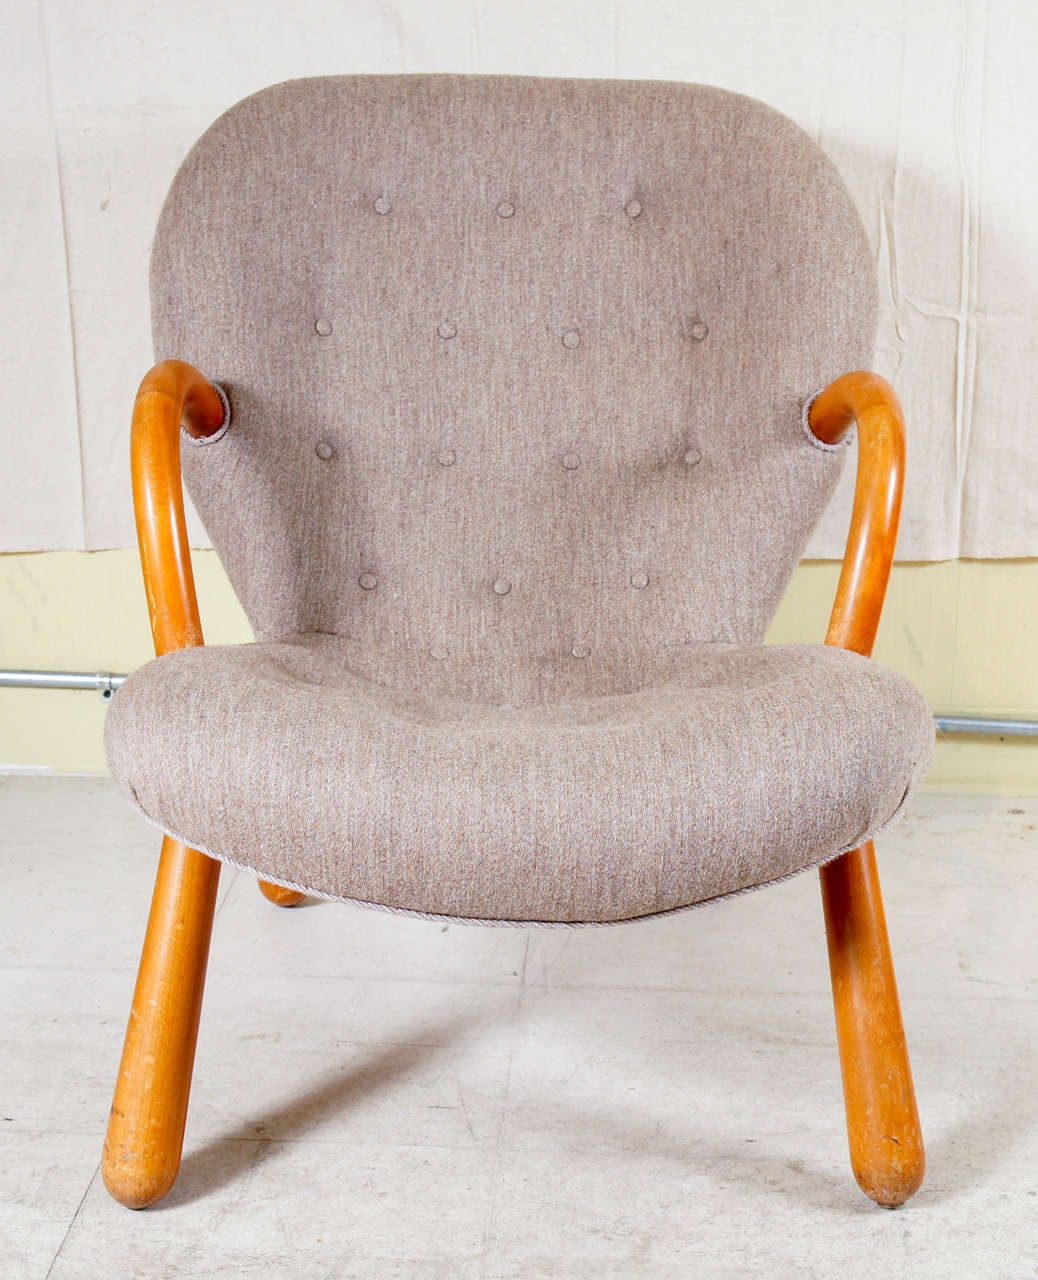 'Clam Chair' by Philip Arctander 2